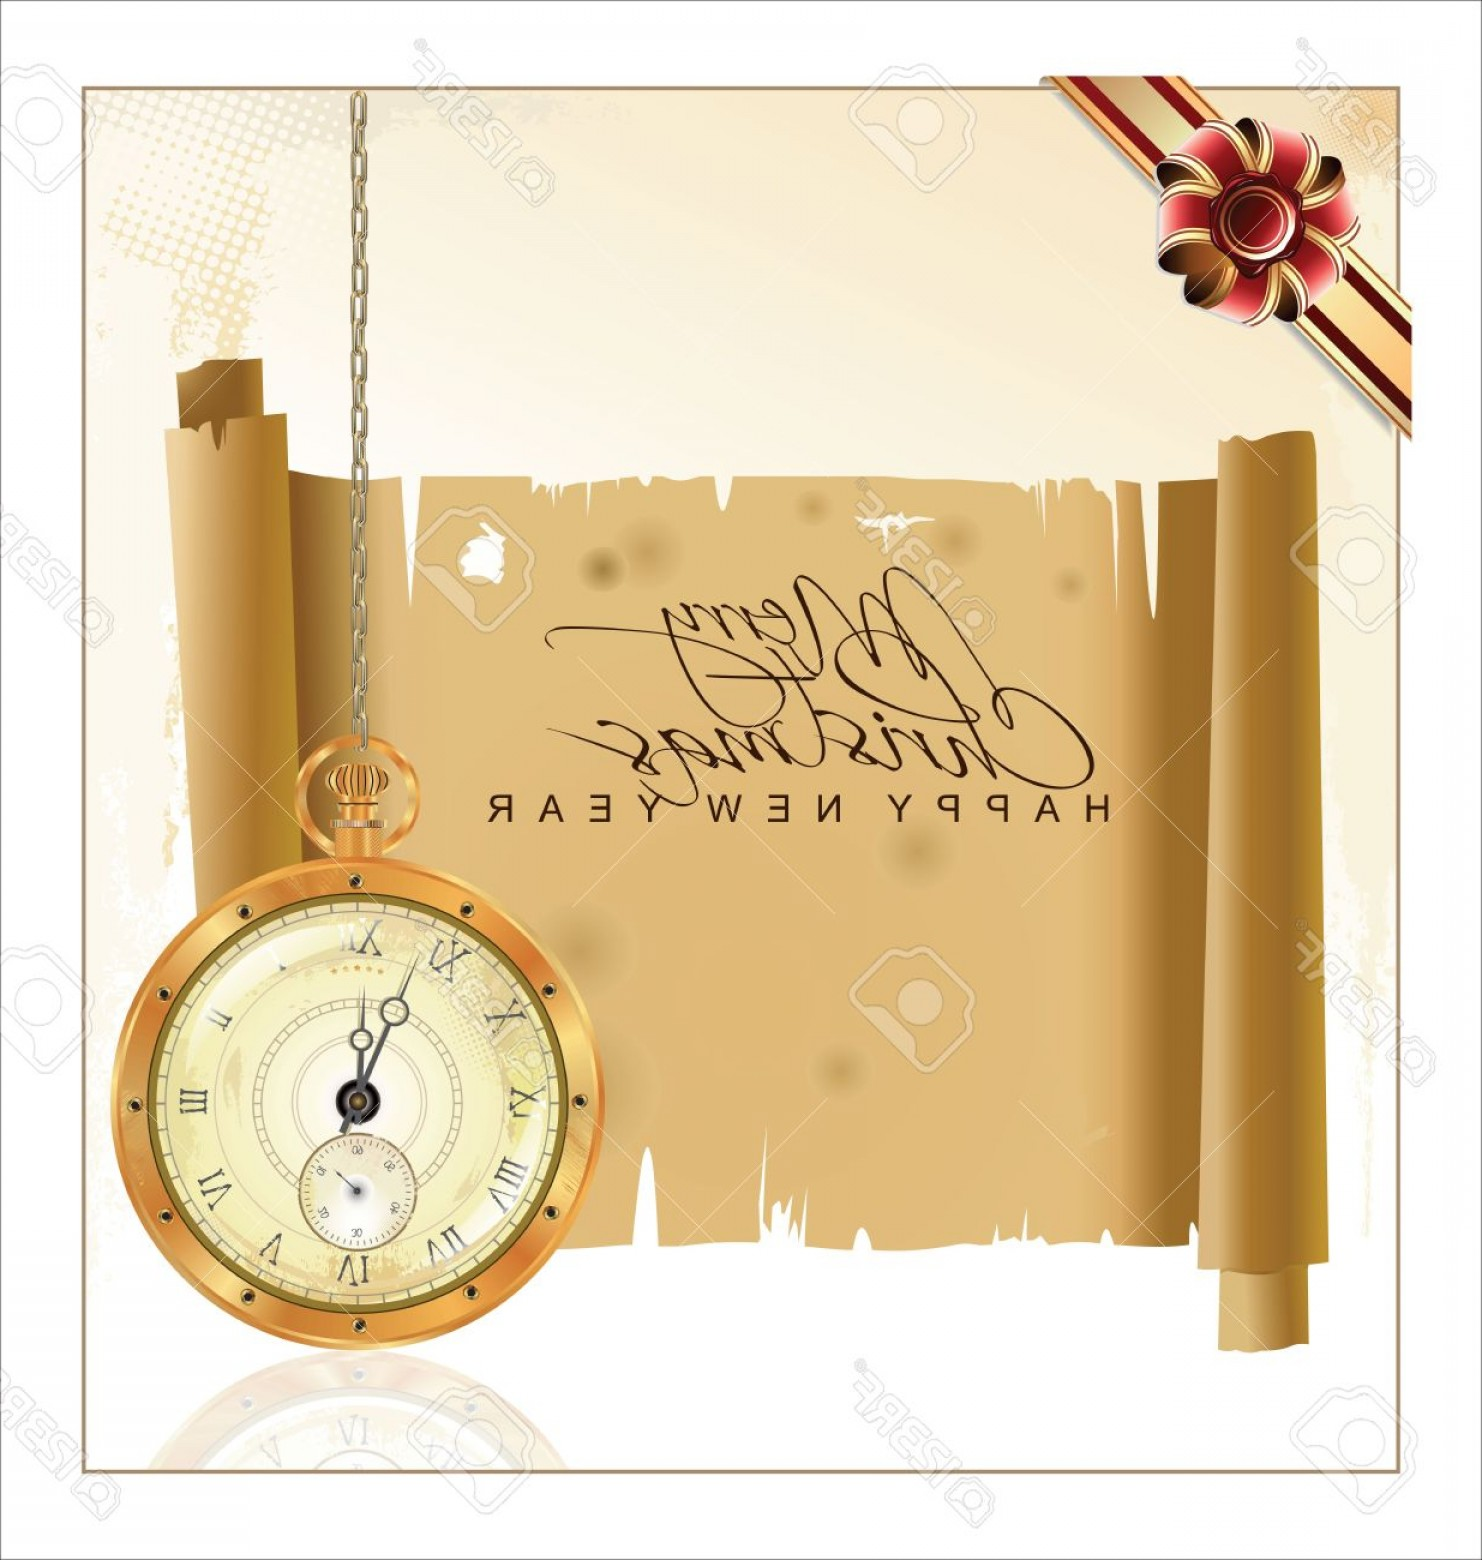 Old Floor Clock Vector: Photovintage Christmas Background With Pocket Watch And Old Paper